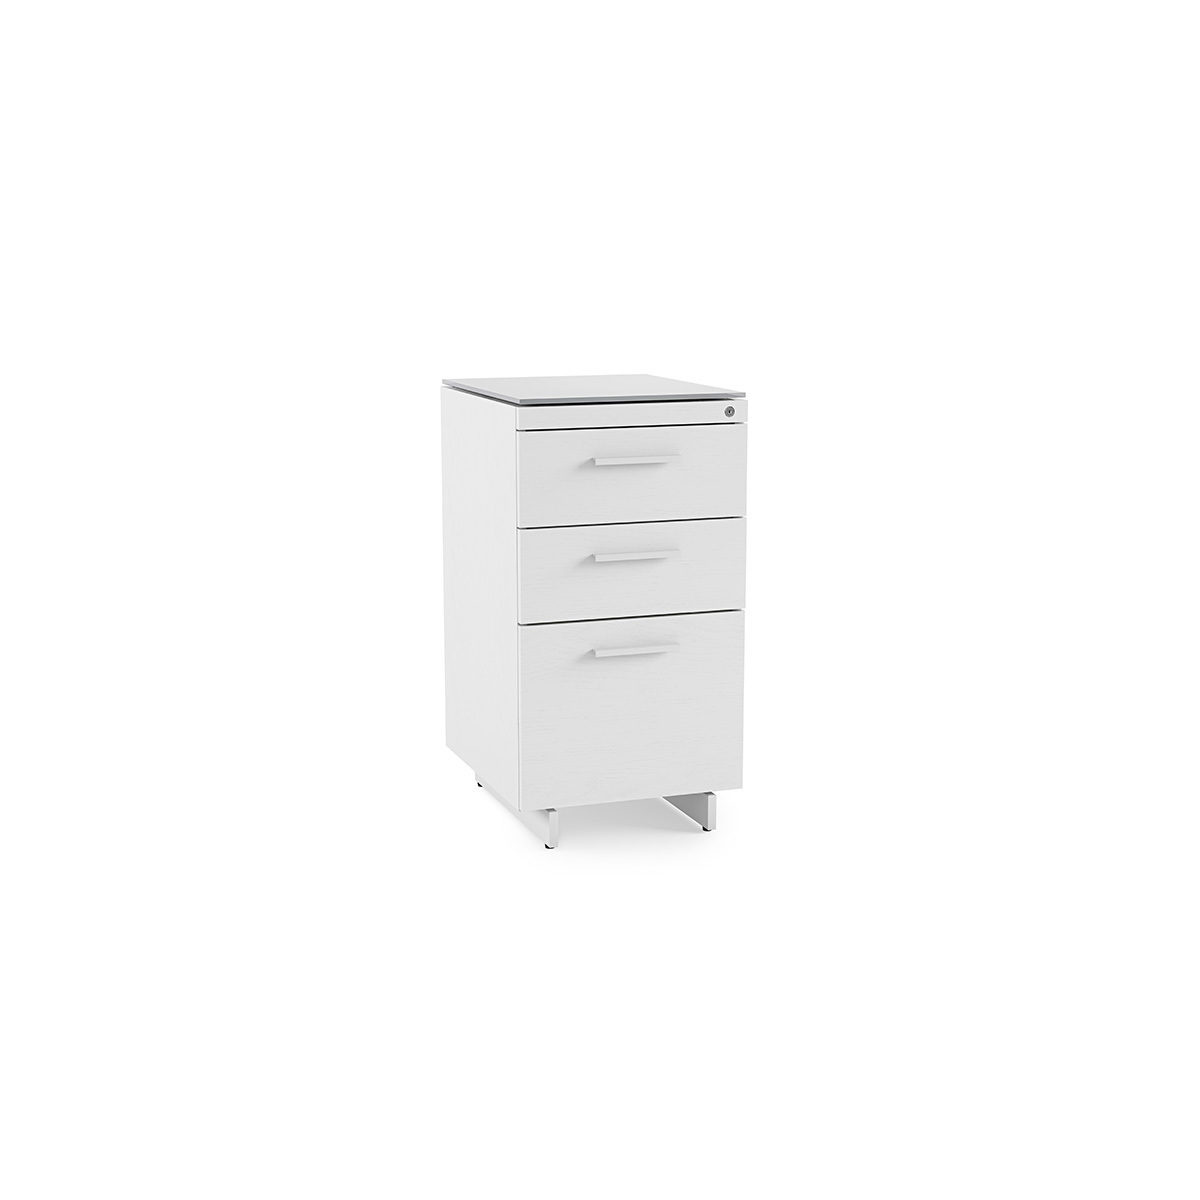 Centro 6402  sc 1 st  BDI Furniture & Centro 3-Drawer File Cabinet 6414 | BDI Furniture